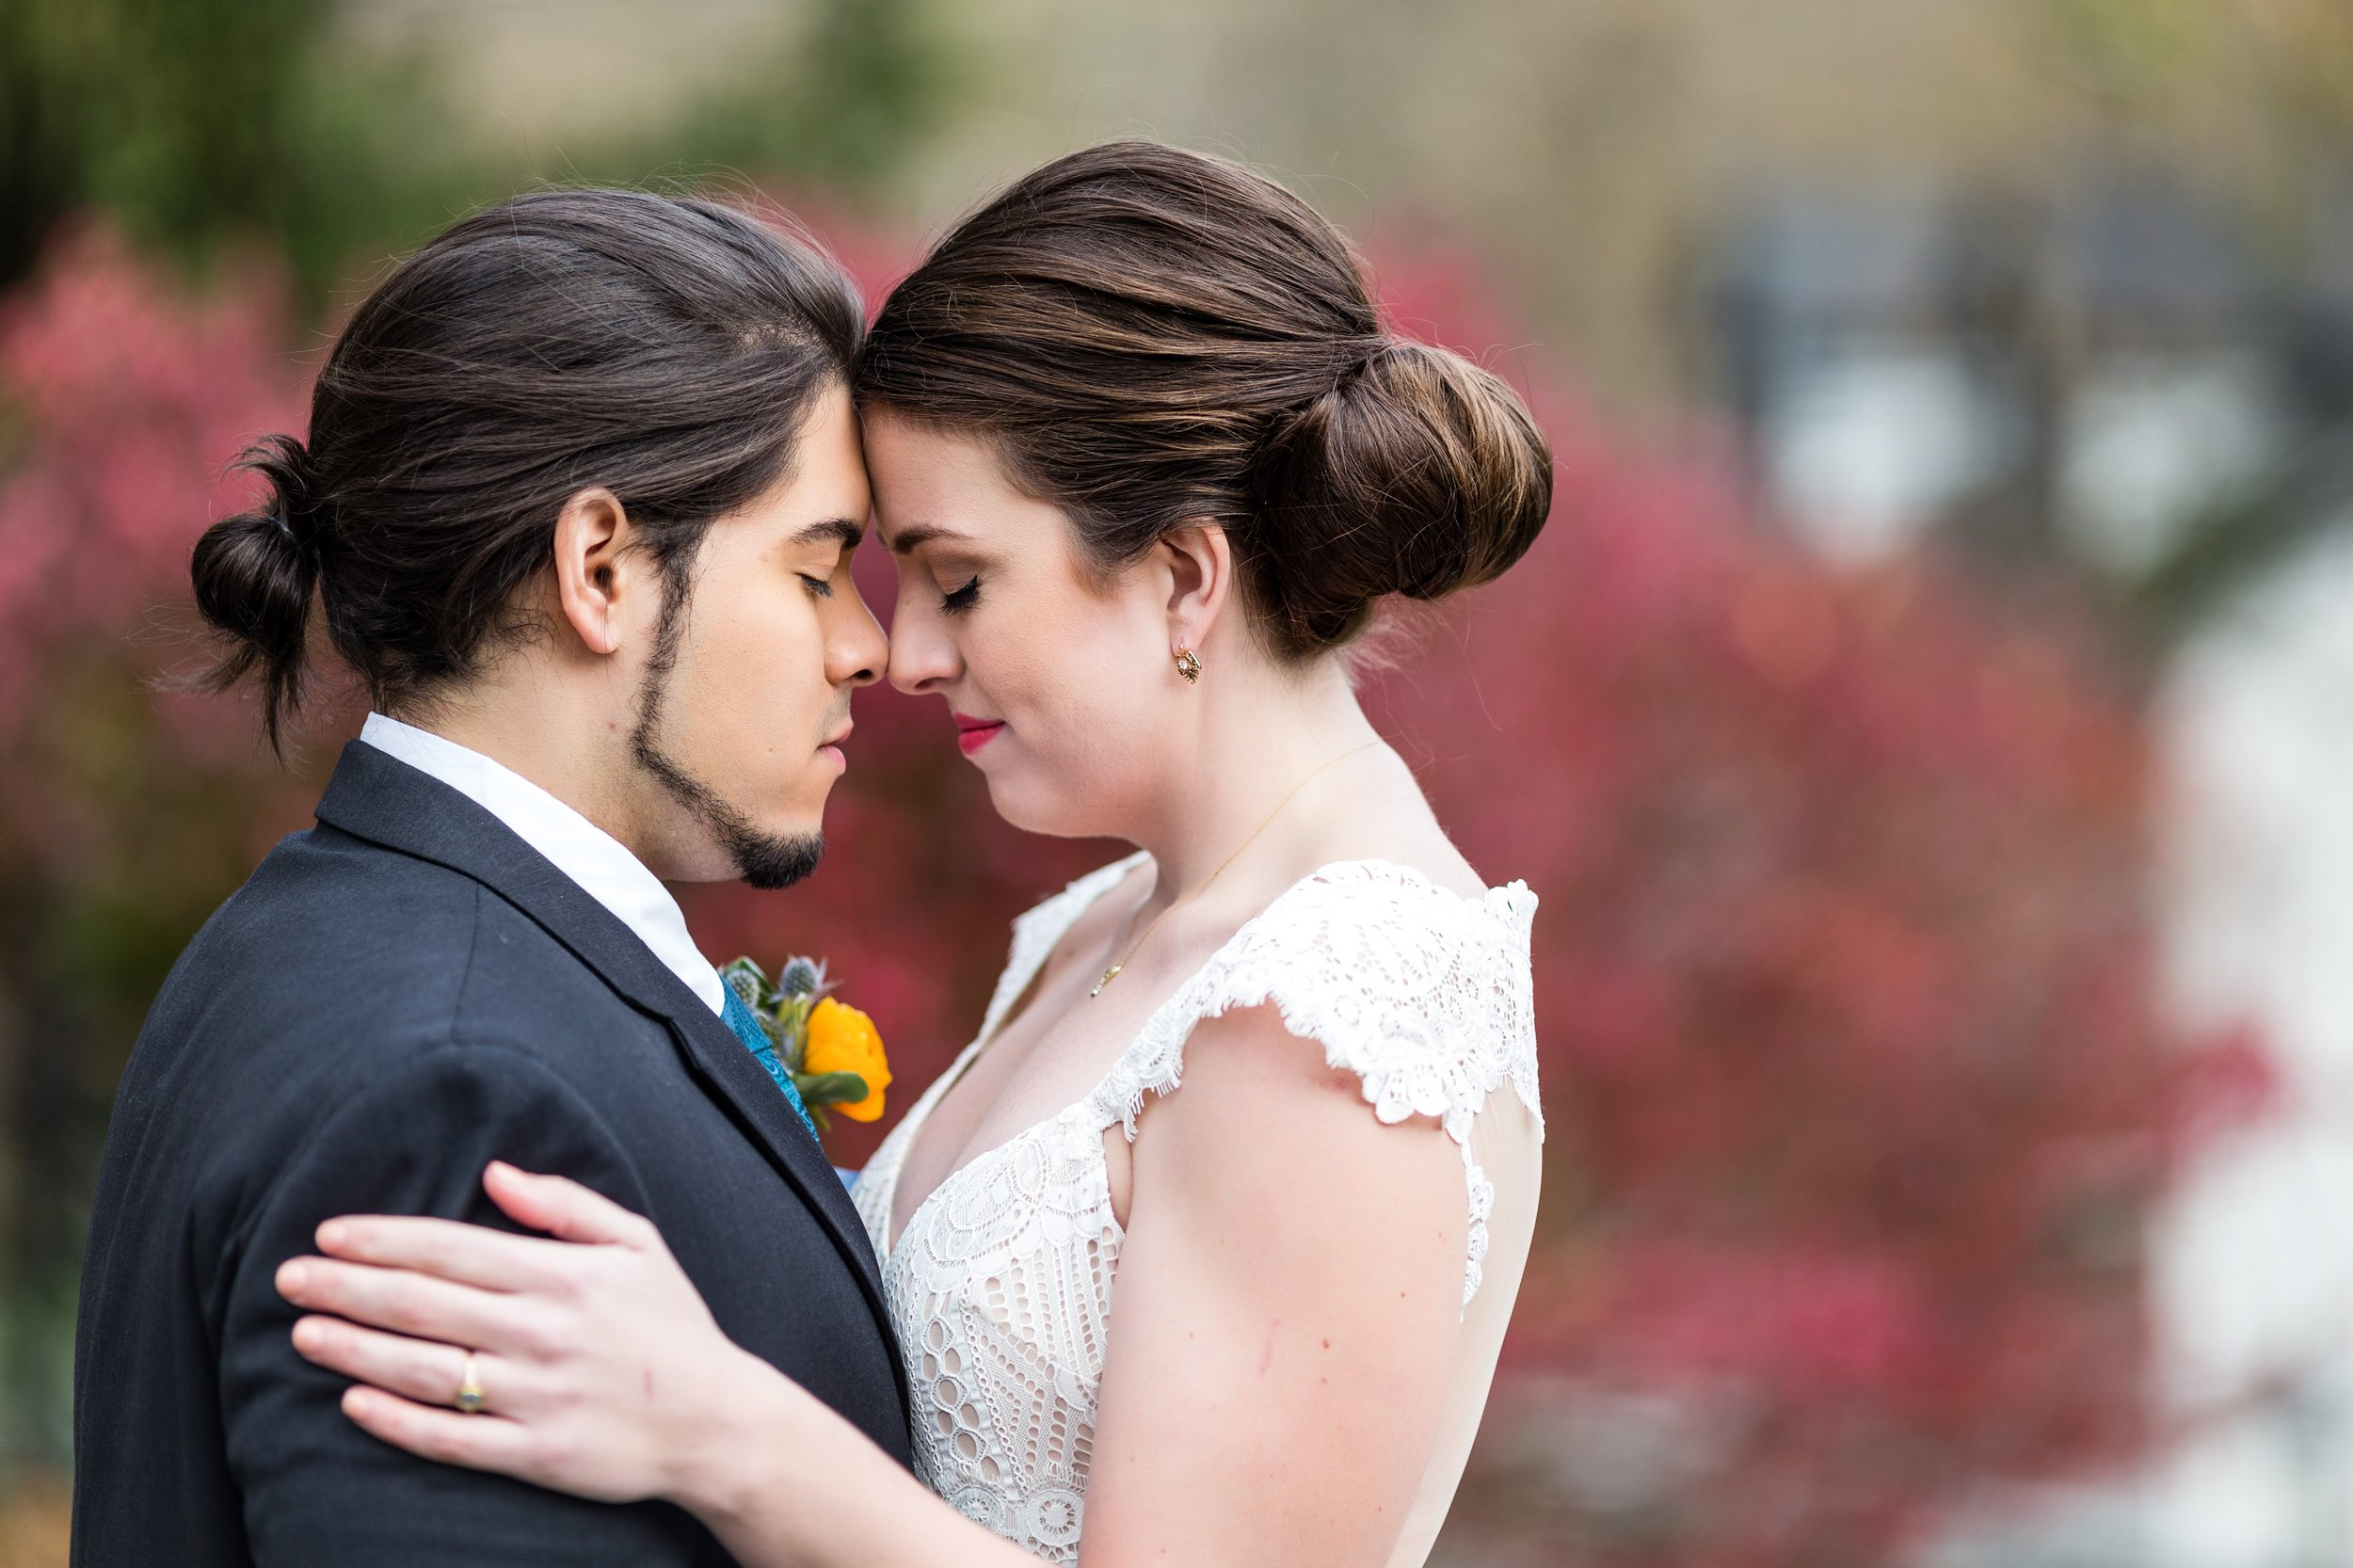 Bride and groom colorful brunch wedding yellow boutonniere Ashley Gerrity Photography